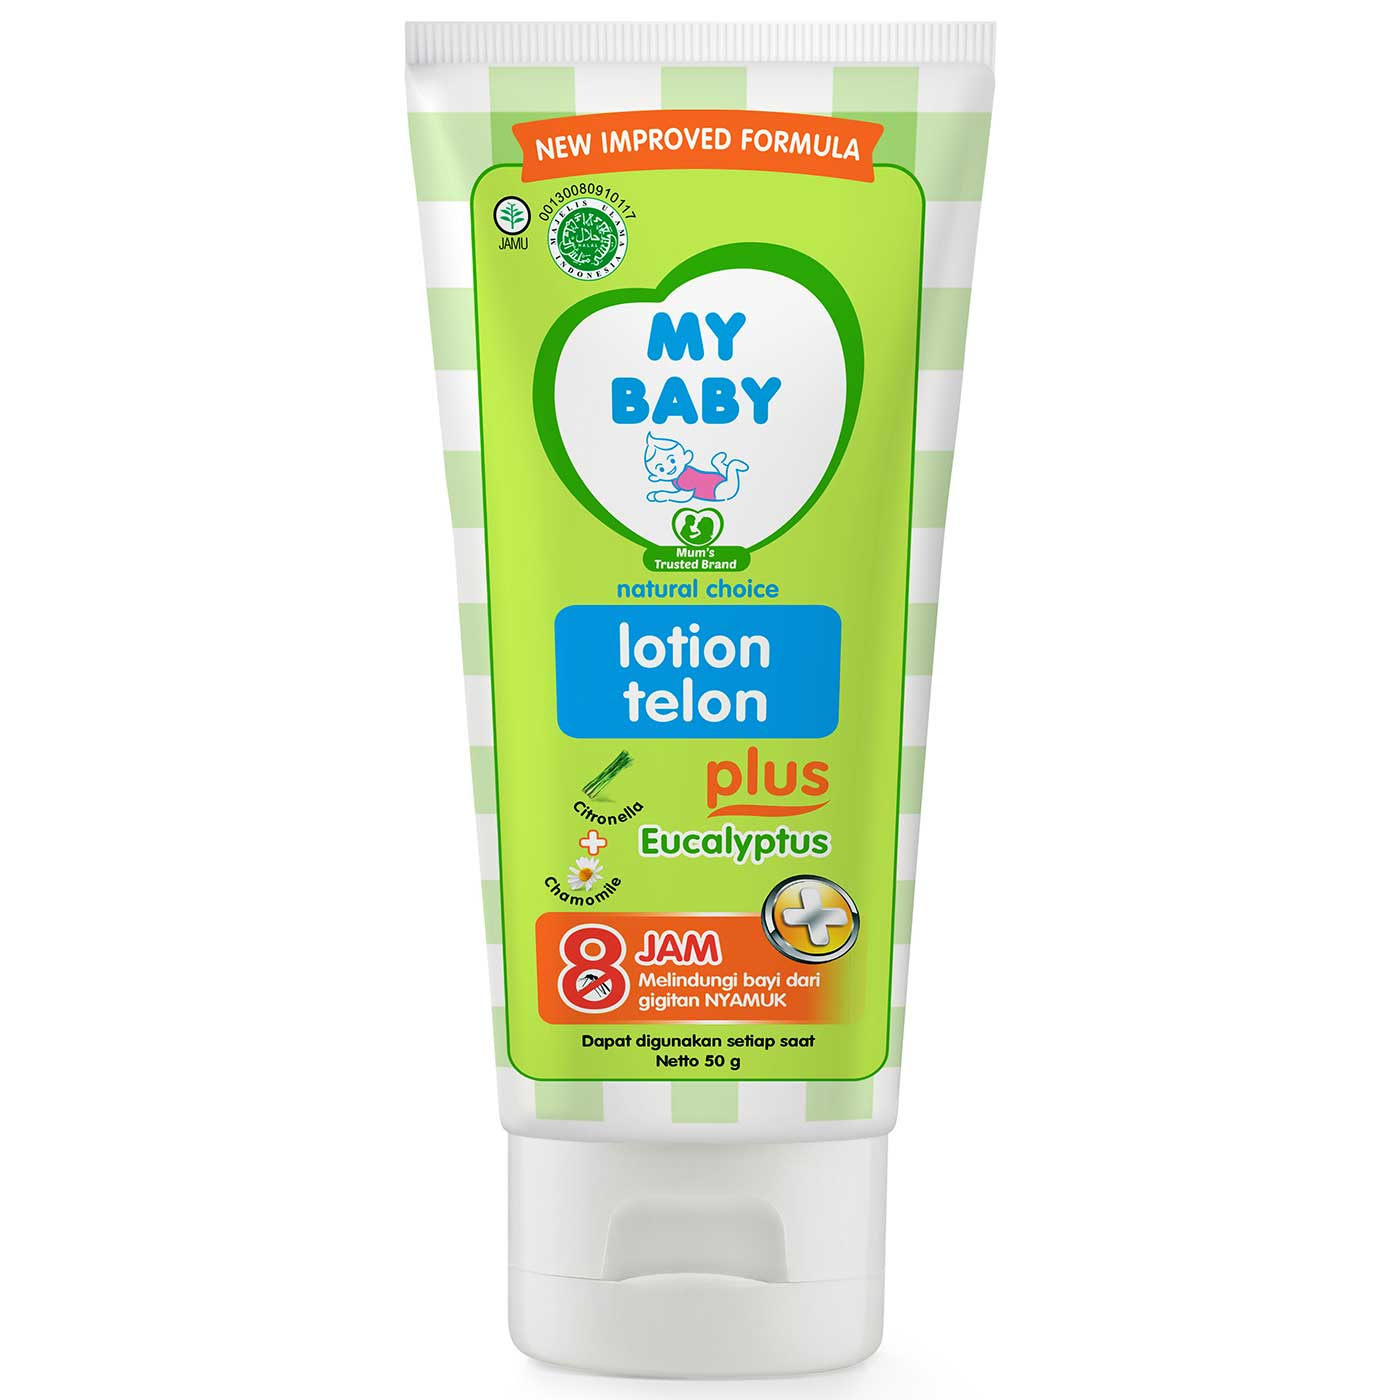 My Baby Lotion Telon Plus 50gr